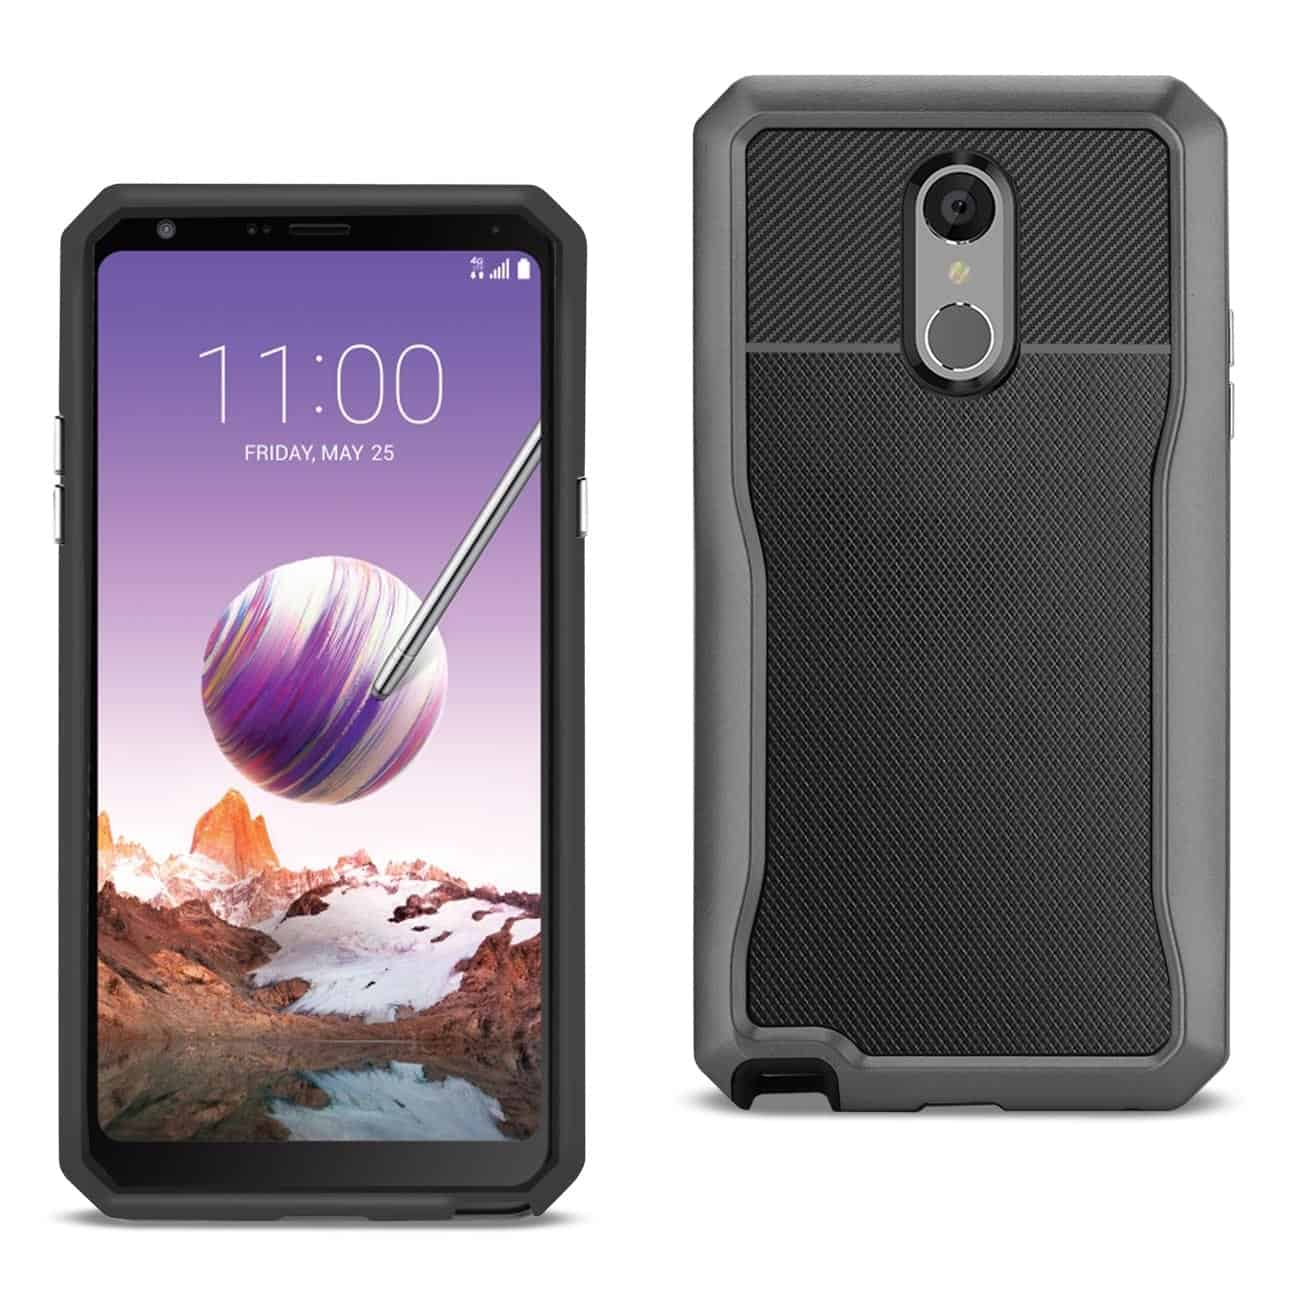 LG STYLO 4 Full Coverage Shockproof Case In Gray